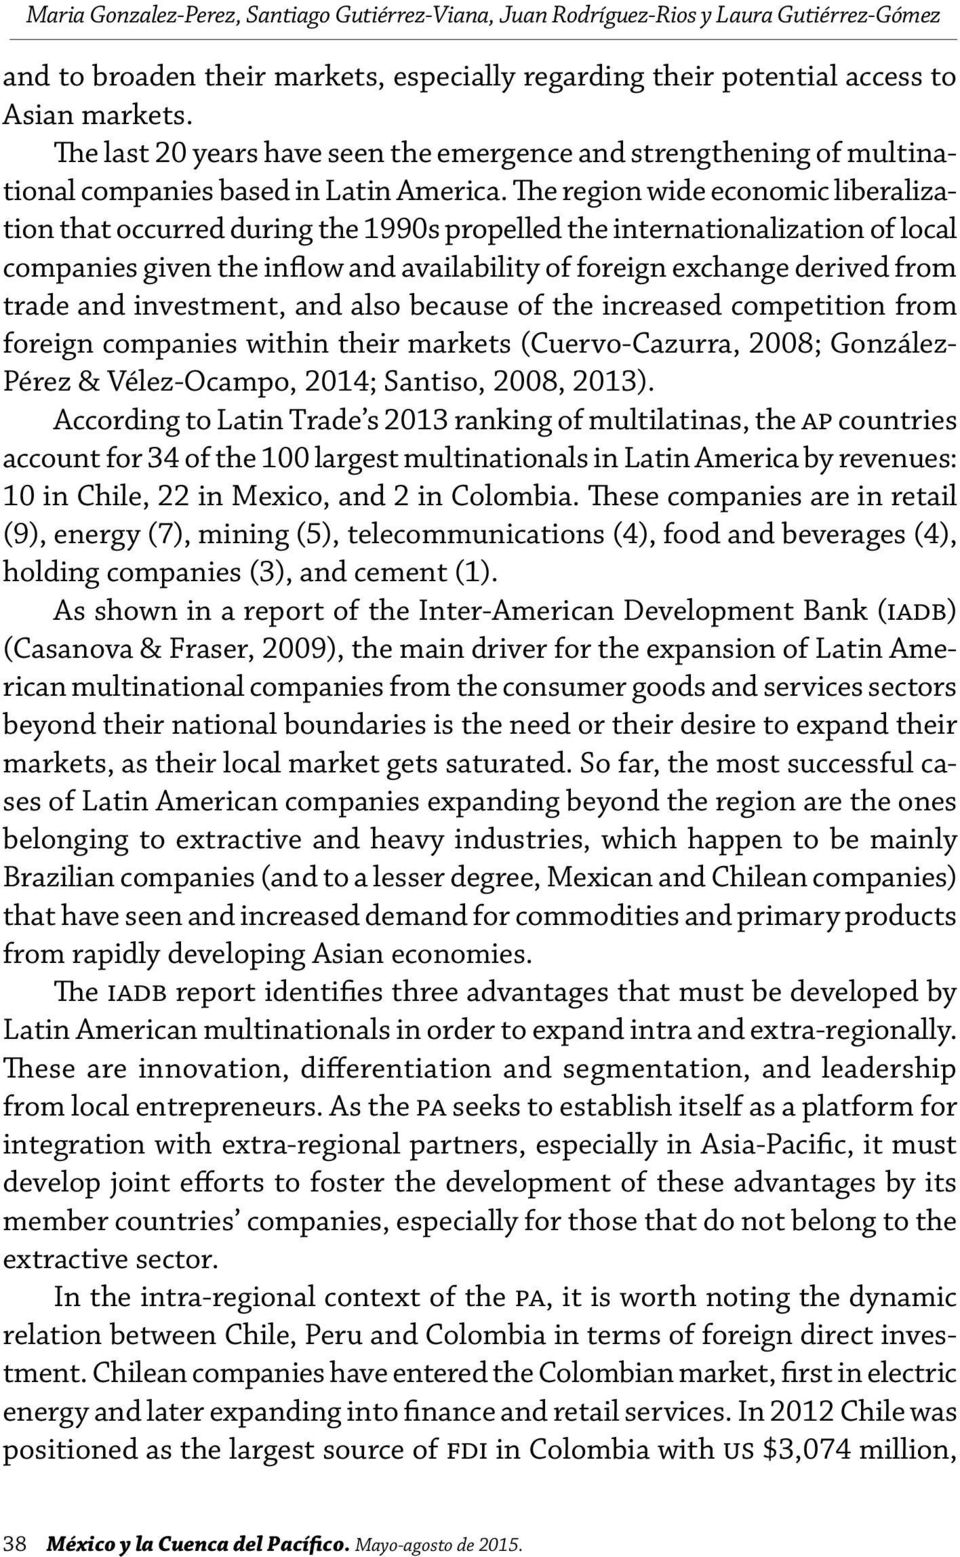 The region wide economic liberalization that occurred during the 1990s propelled the internationalization of local companies given the inflow and availability of foreign exchange derived from trade